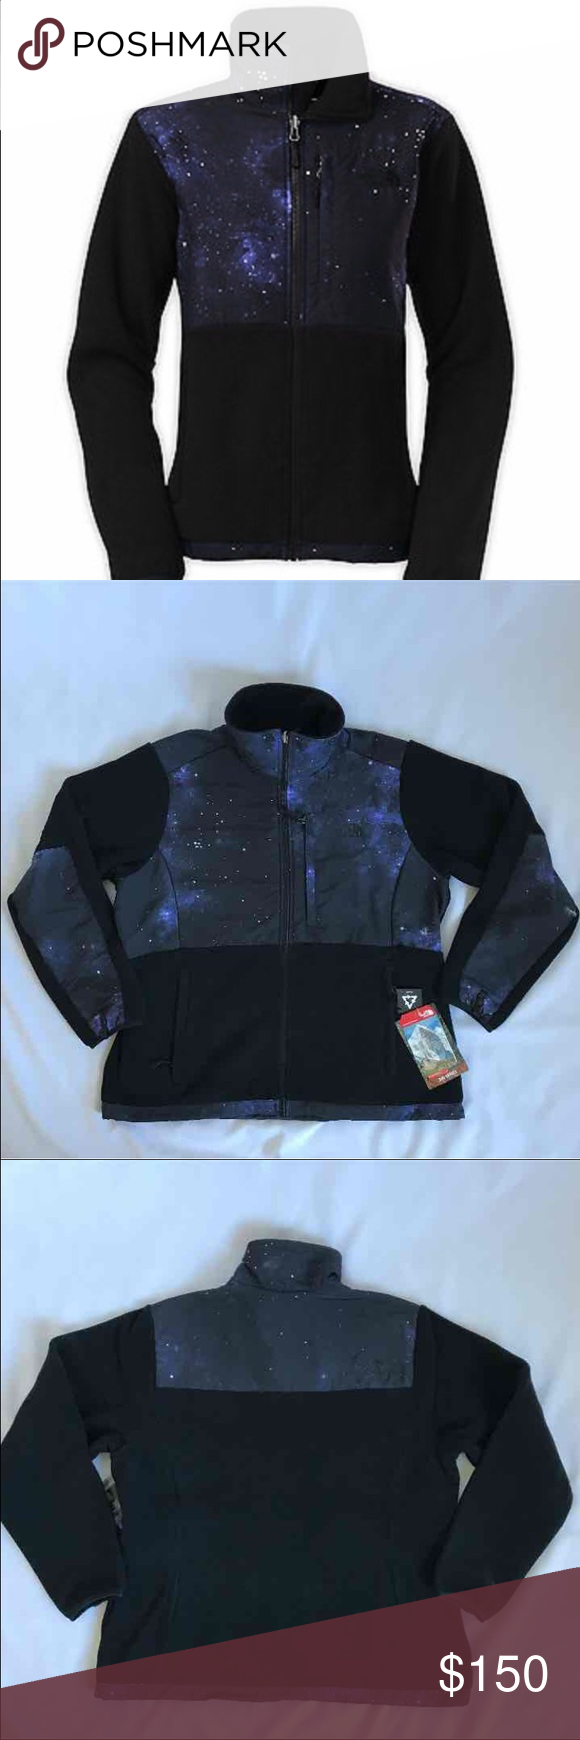 The north face fleece jacket black galactic xl new with tags the